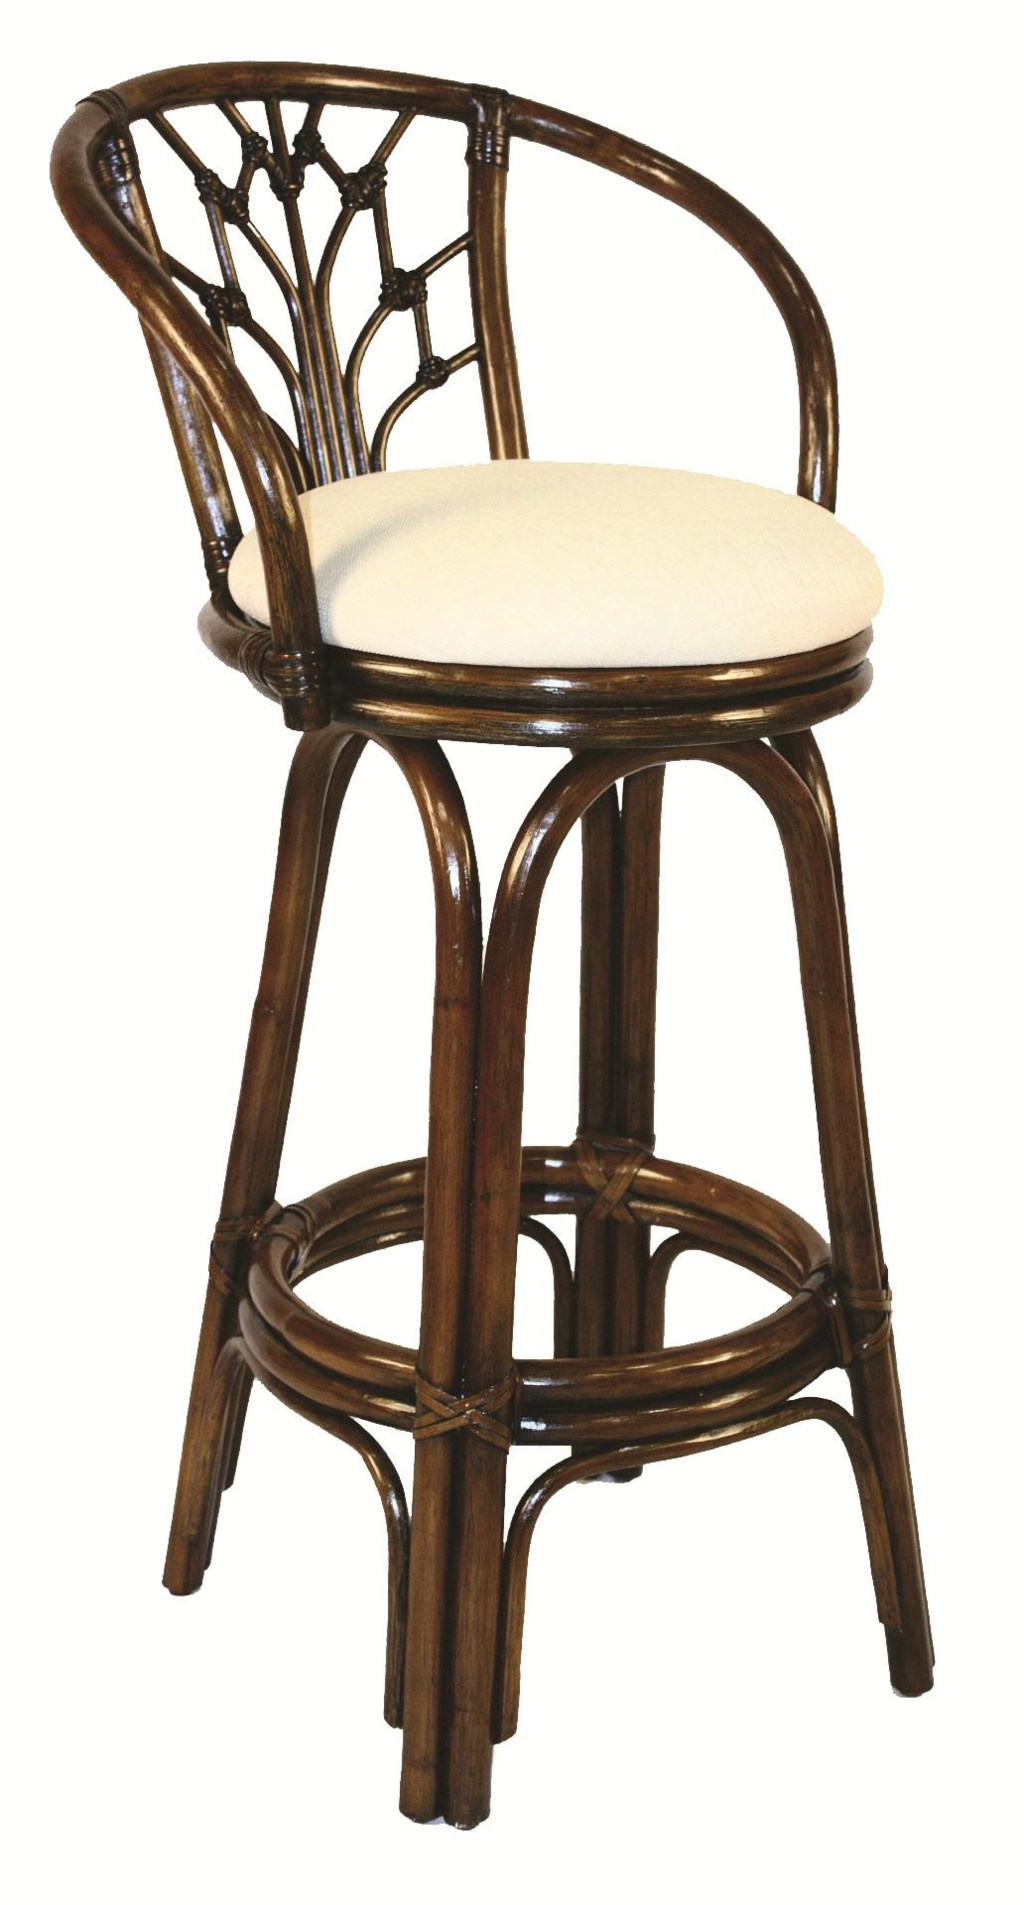 Pelican Reef Bar Stools Pr 806 6094 Atq B Bali 30 Barstool With